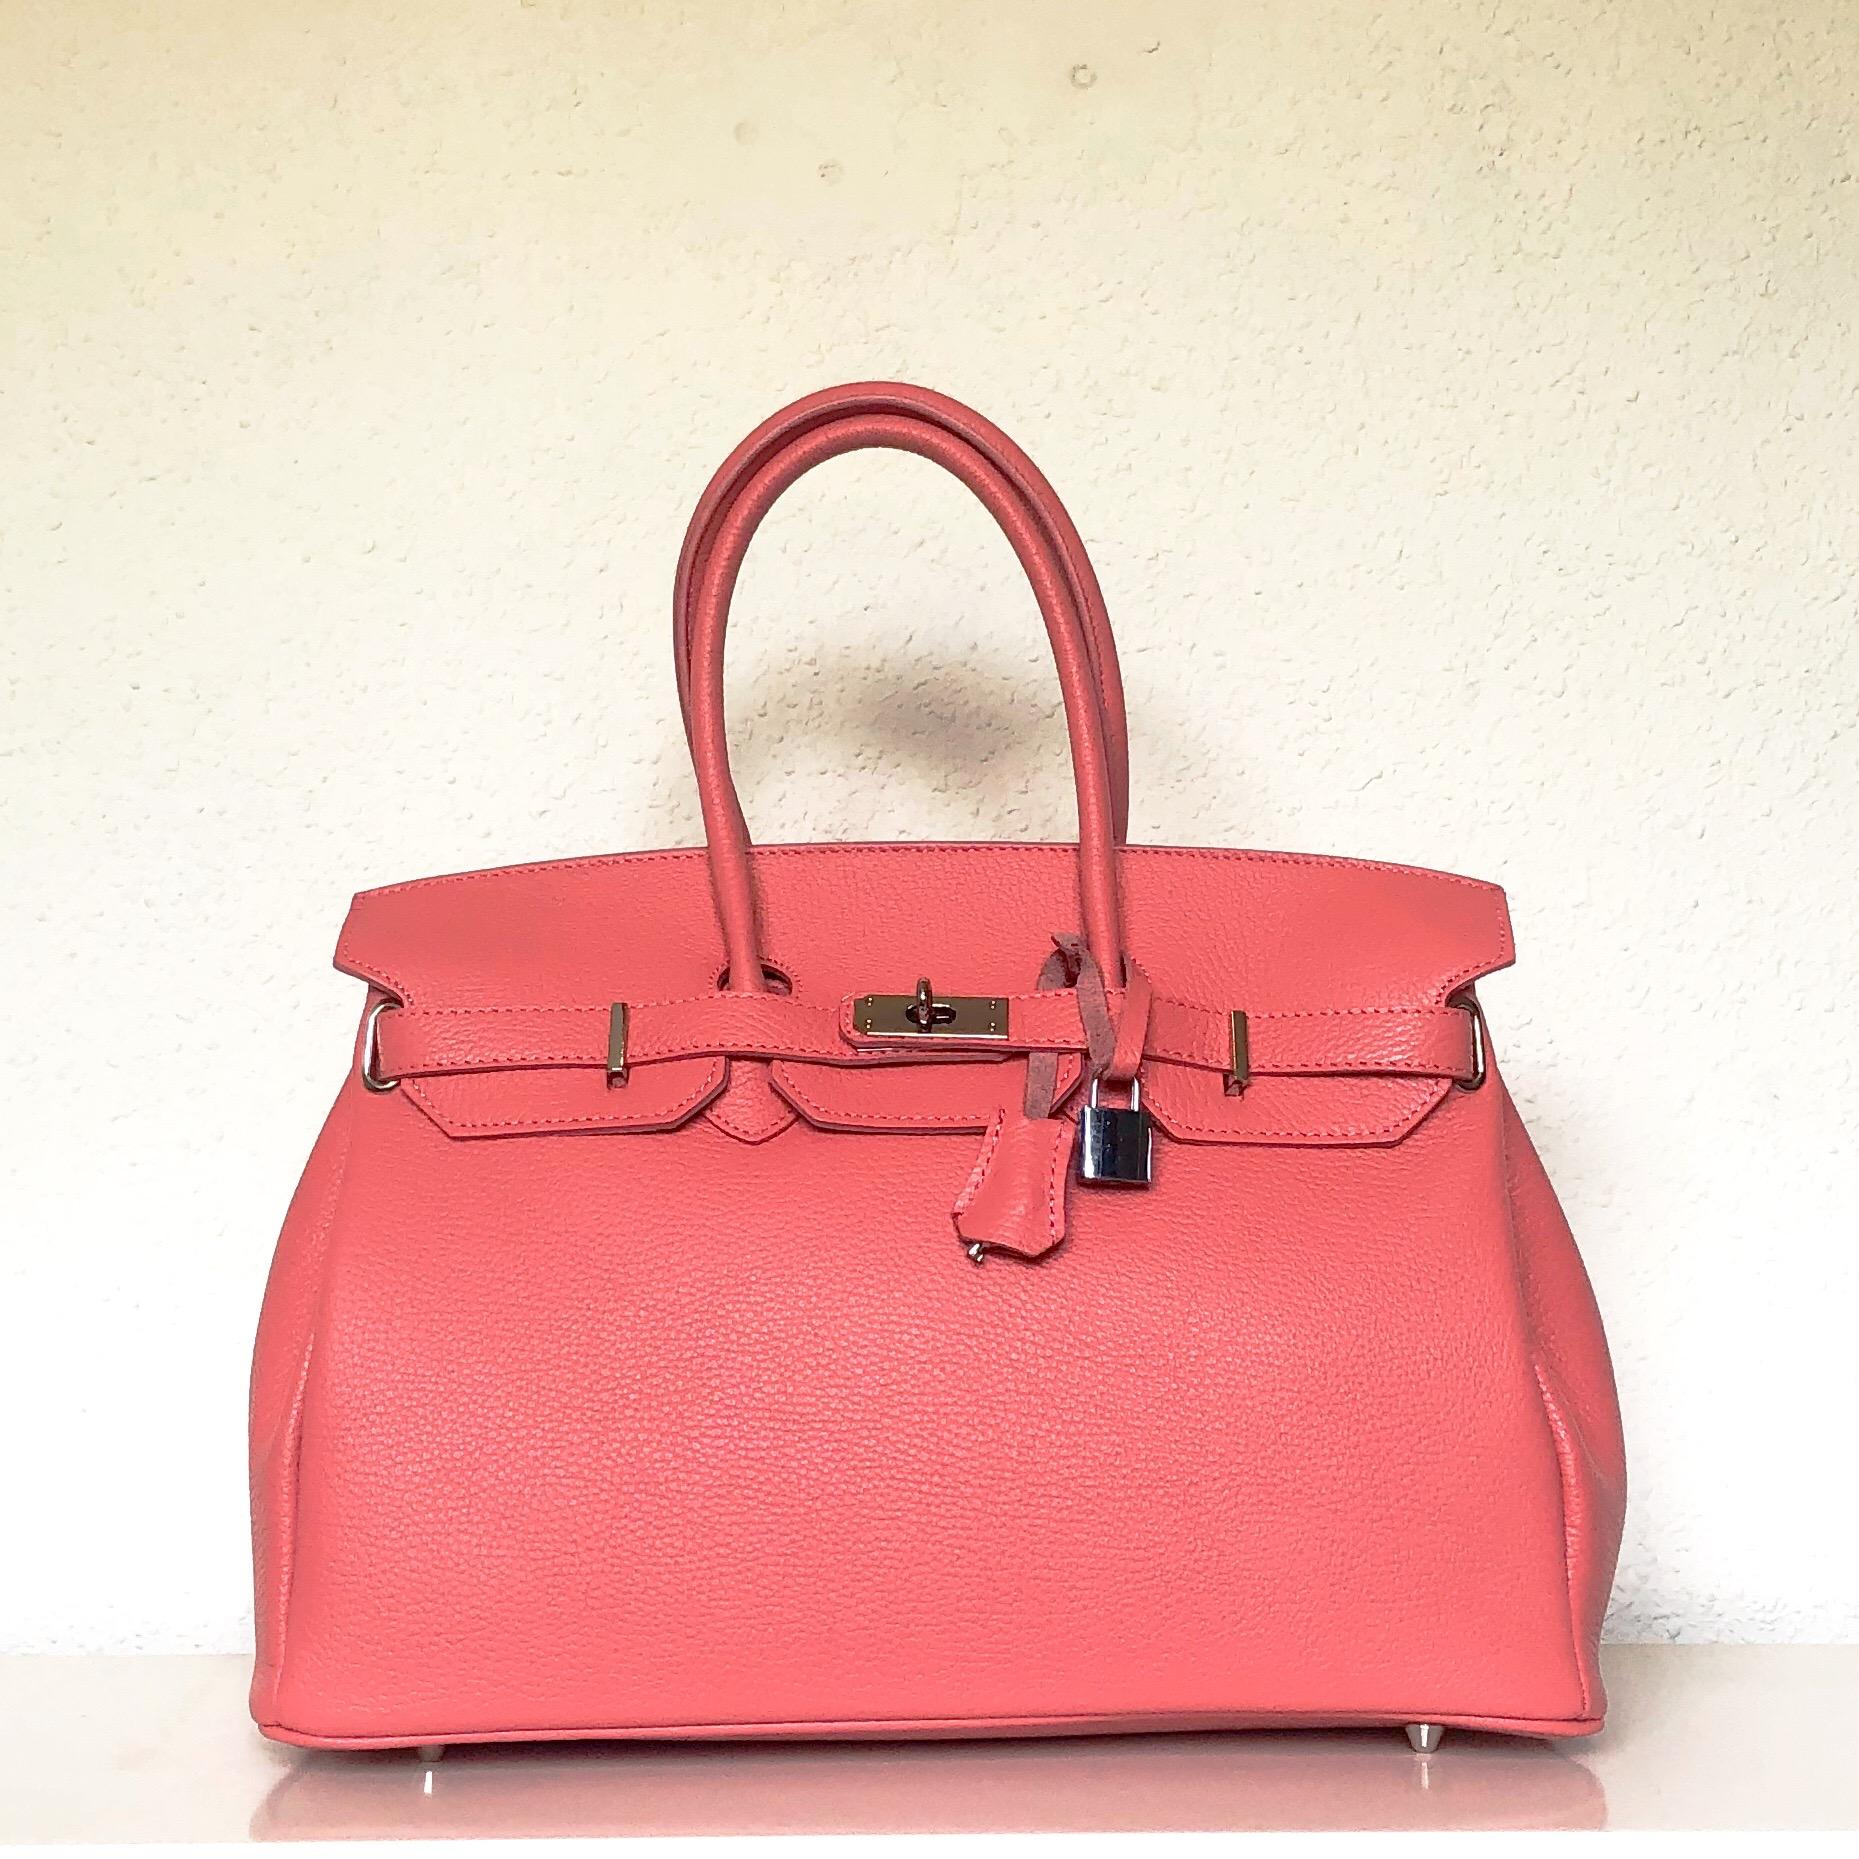 Handbag candado rosa chicle